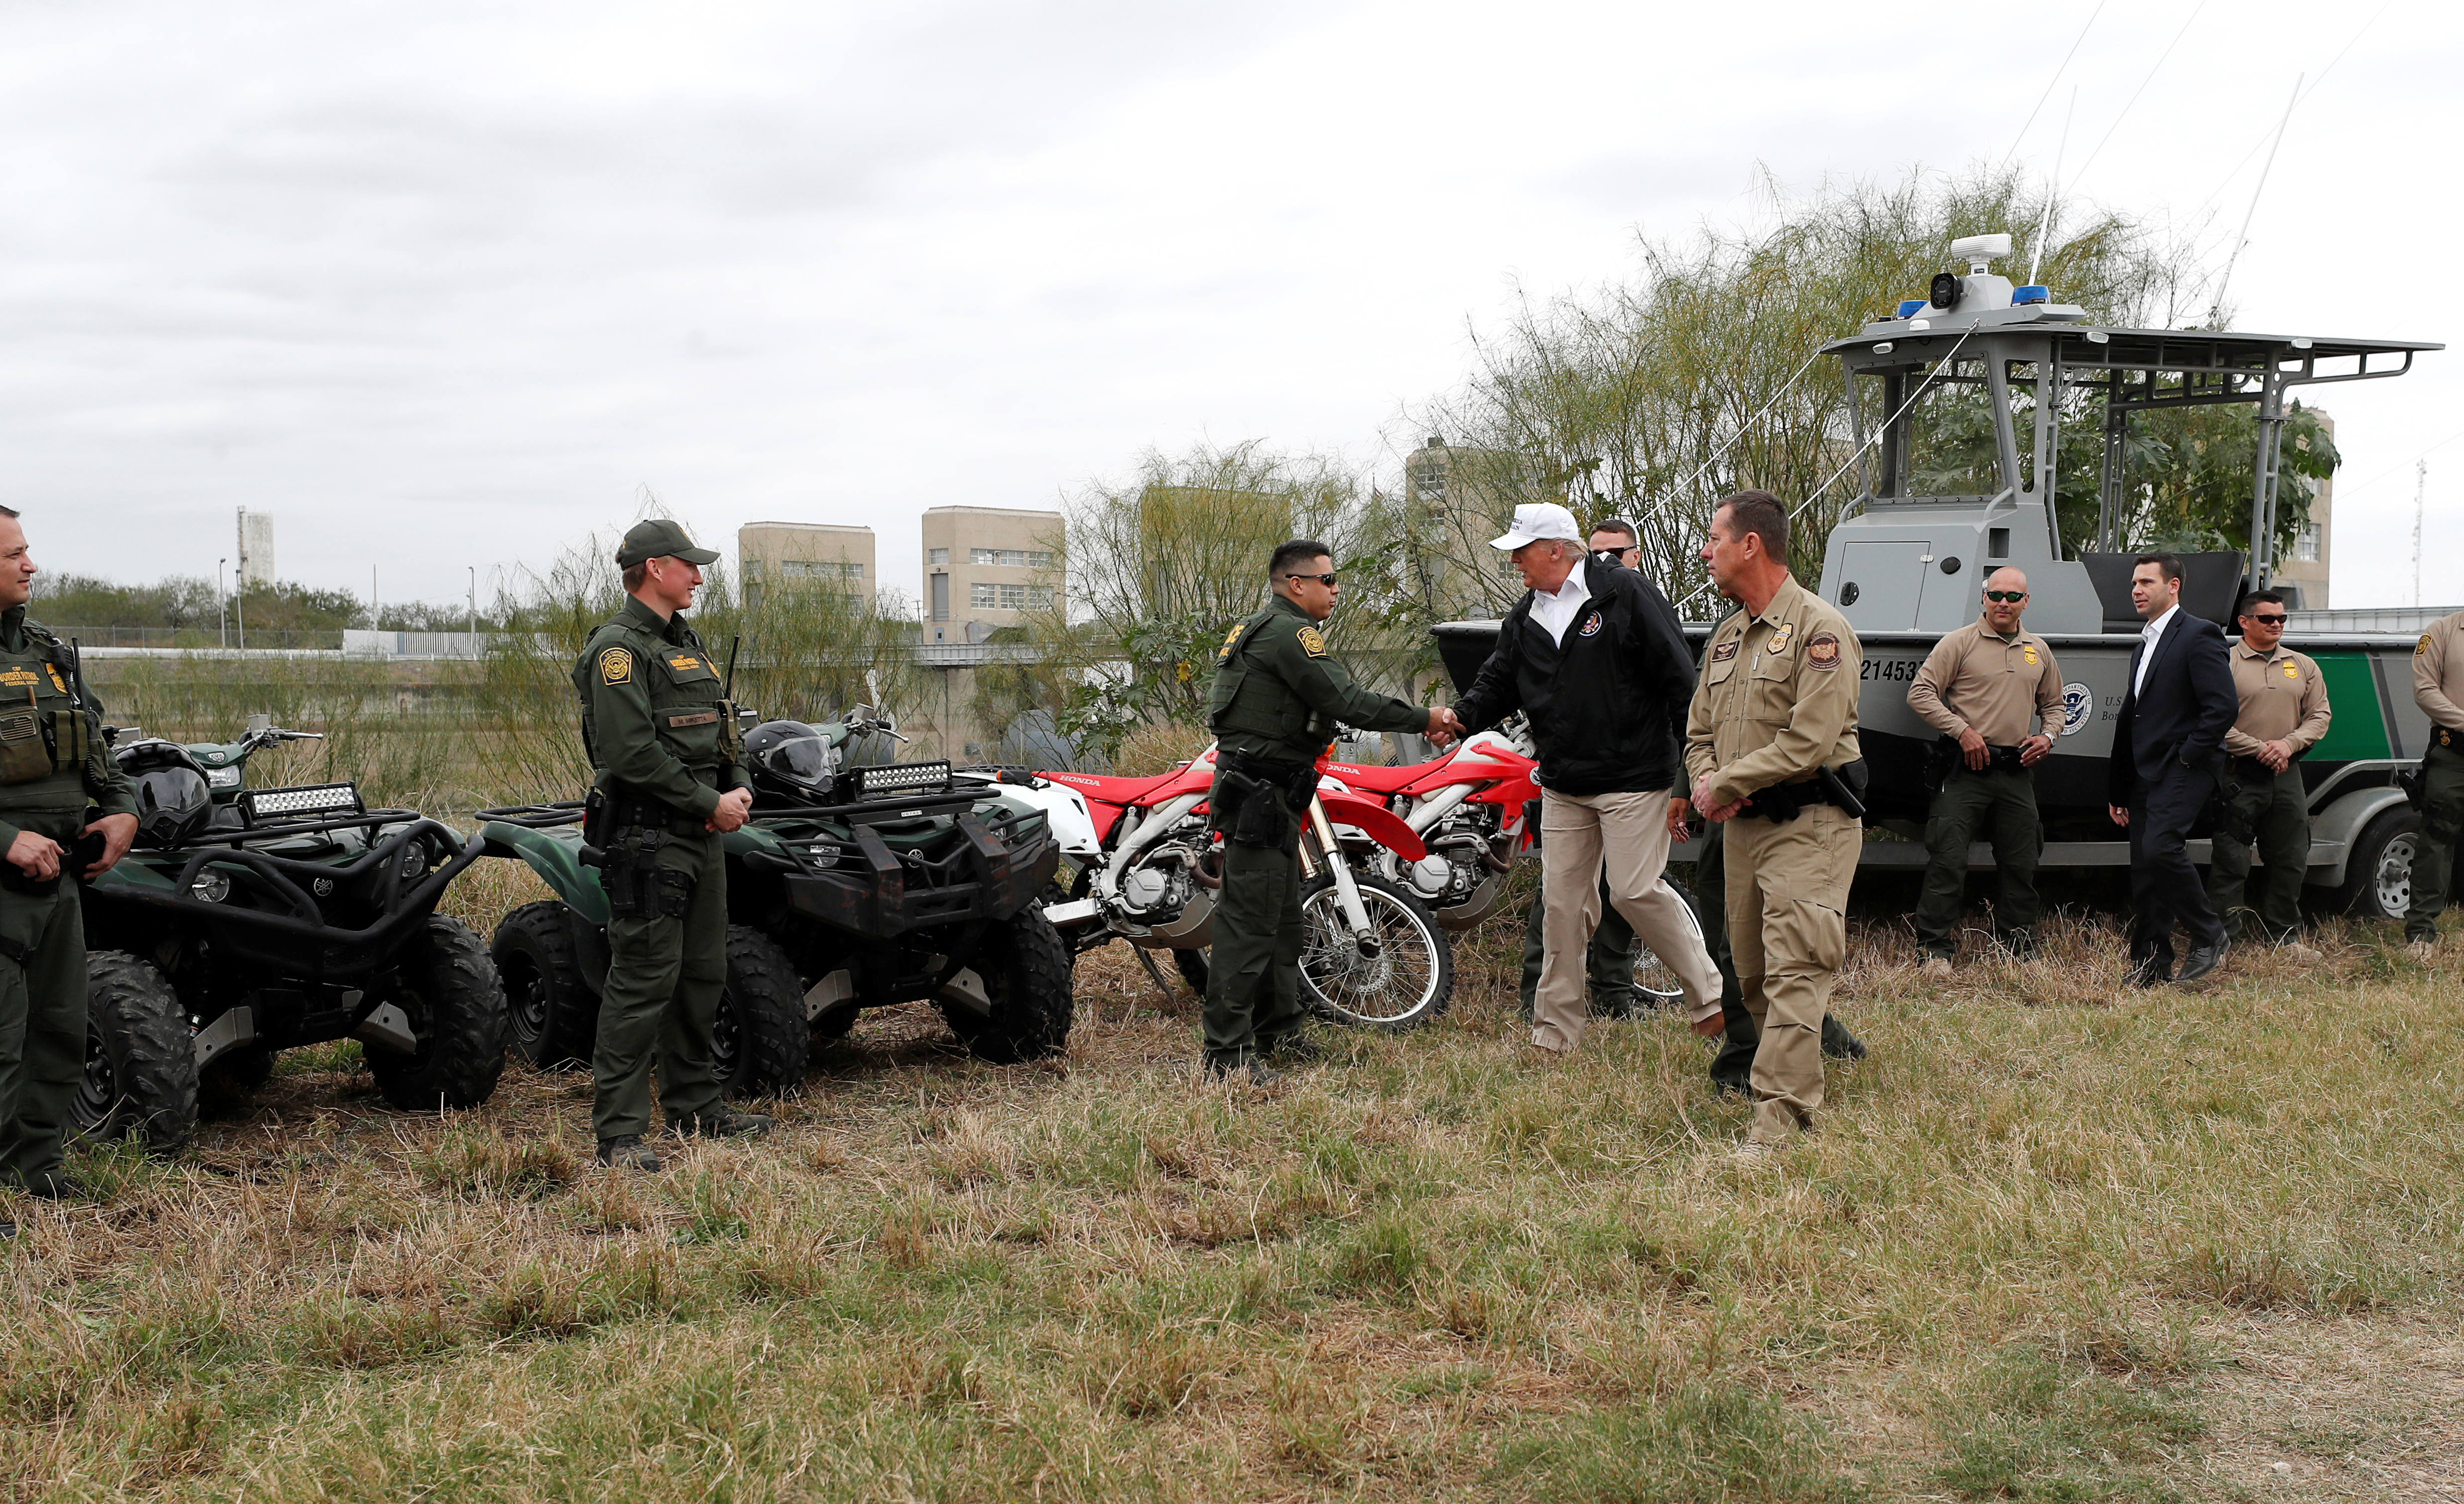 U.S. President Donald Trump greets U.S. Border Patrol agents standing with their all terrain vehicles, motorcycles and a boat on the banks of the Rio Grande River during his visit to the U.S. - Mexico border in Mission, Texas, U.S., January 10, 2019. REUTERS/Leah Millis